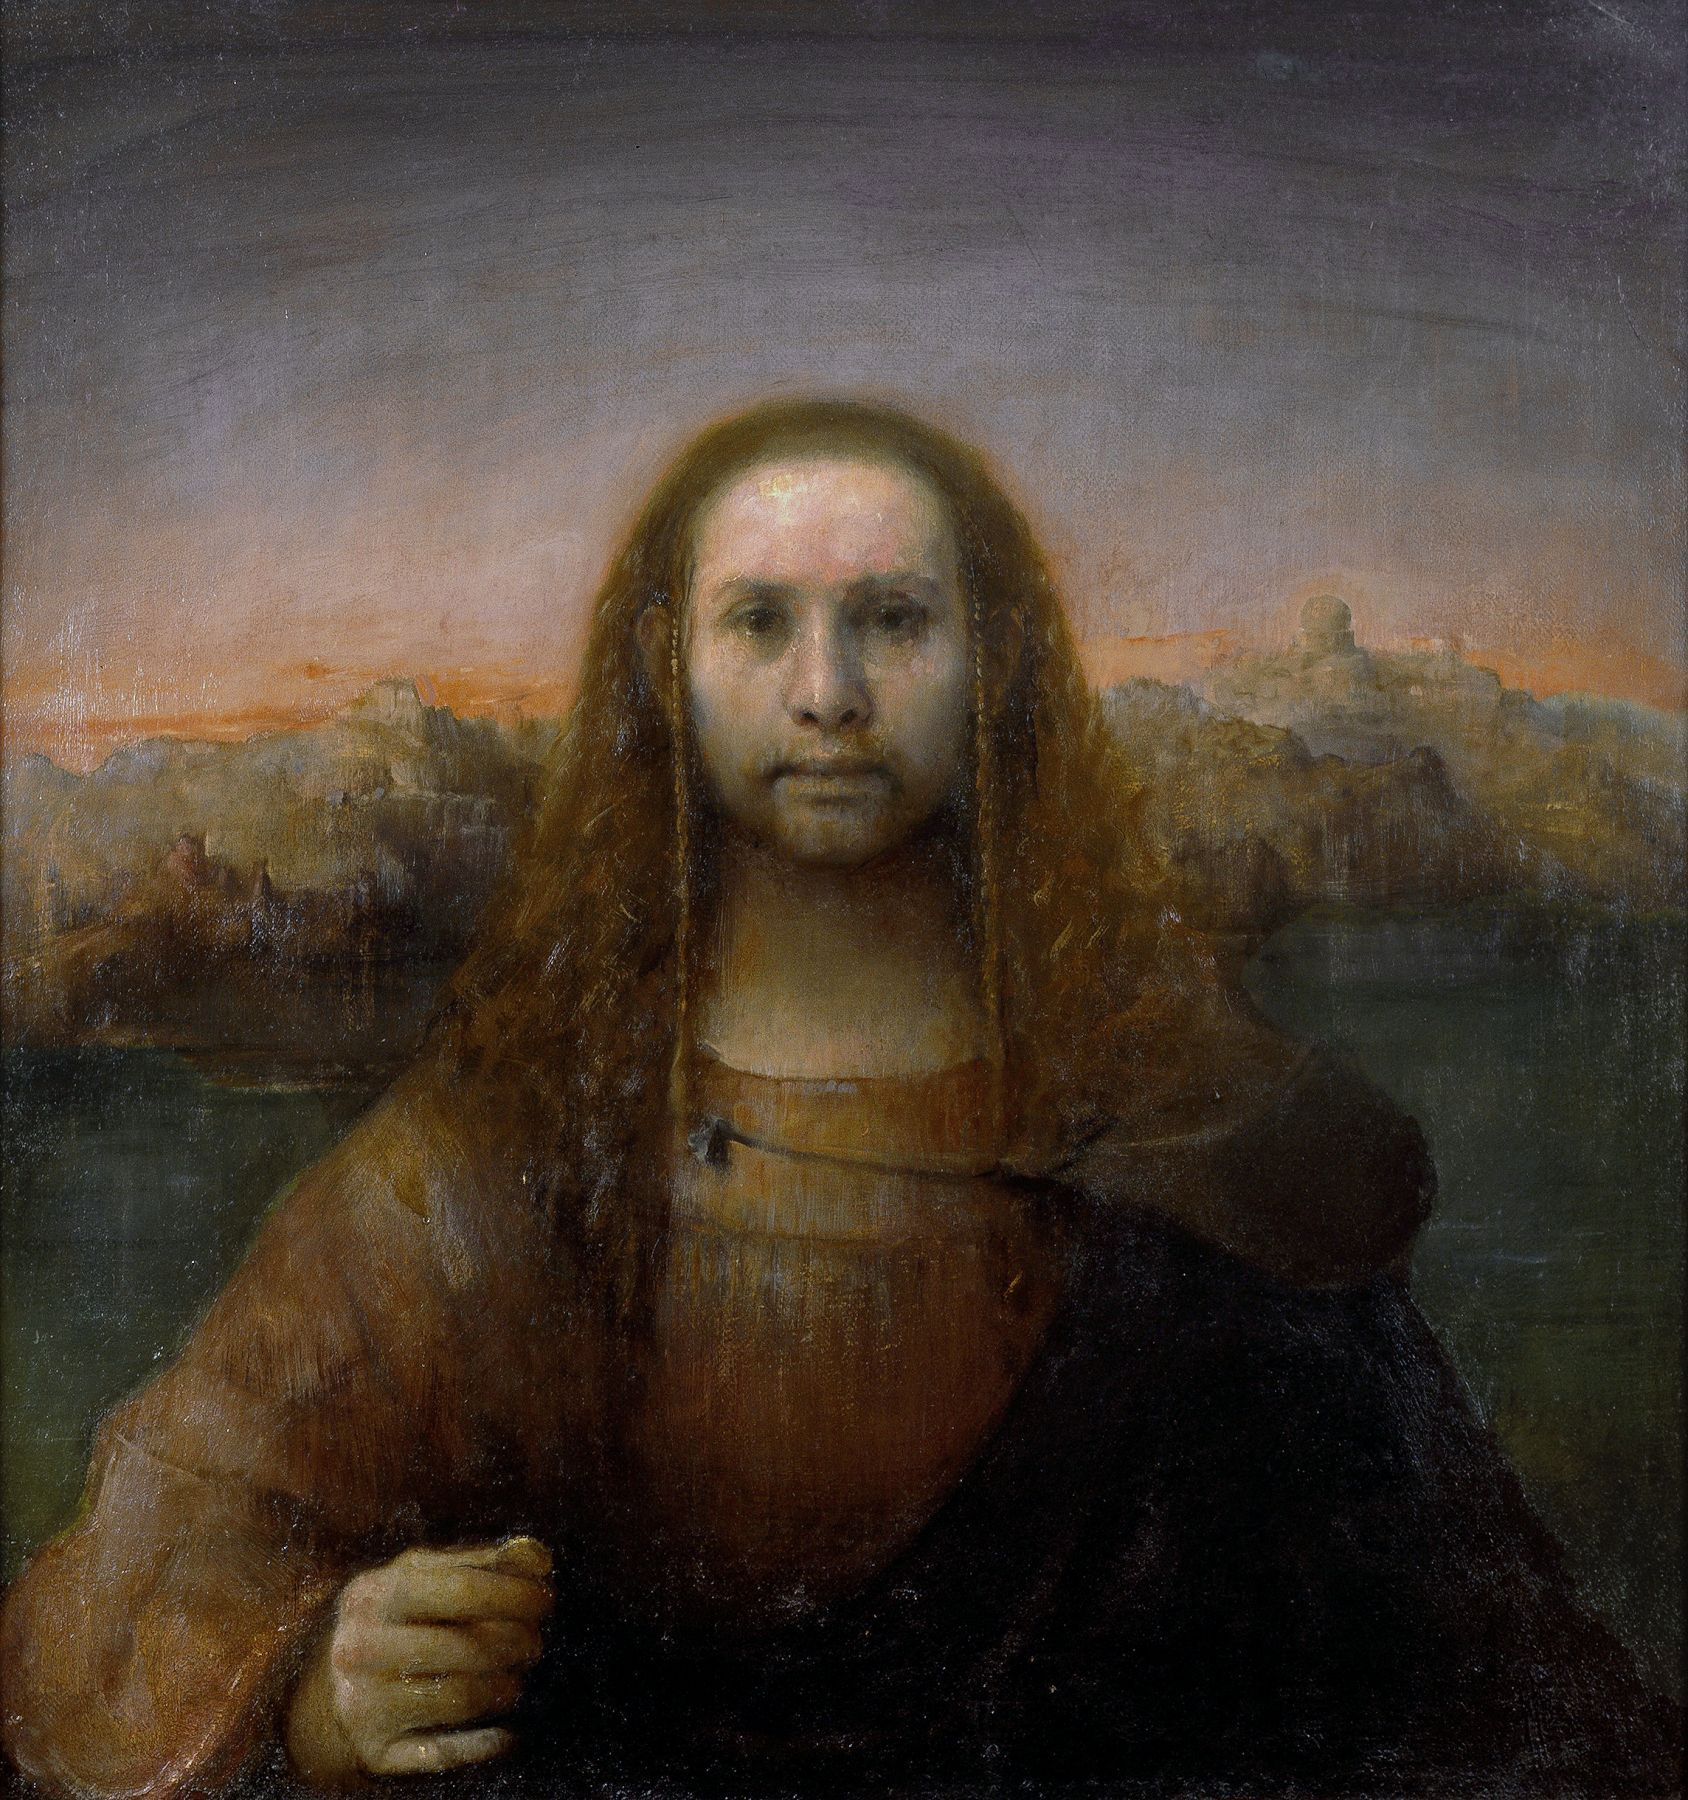 Odd Nerdrum, Man with Golden Coin, oil on linen, 33 3/8 x 31 5/8 inches